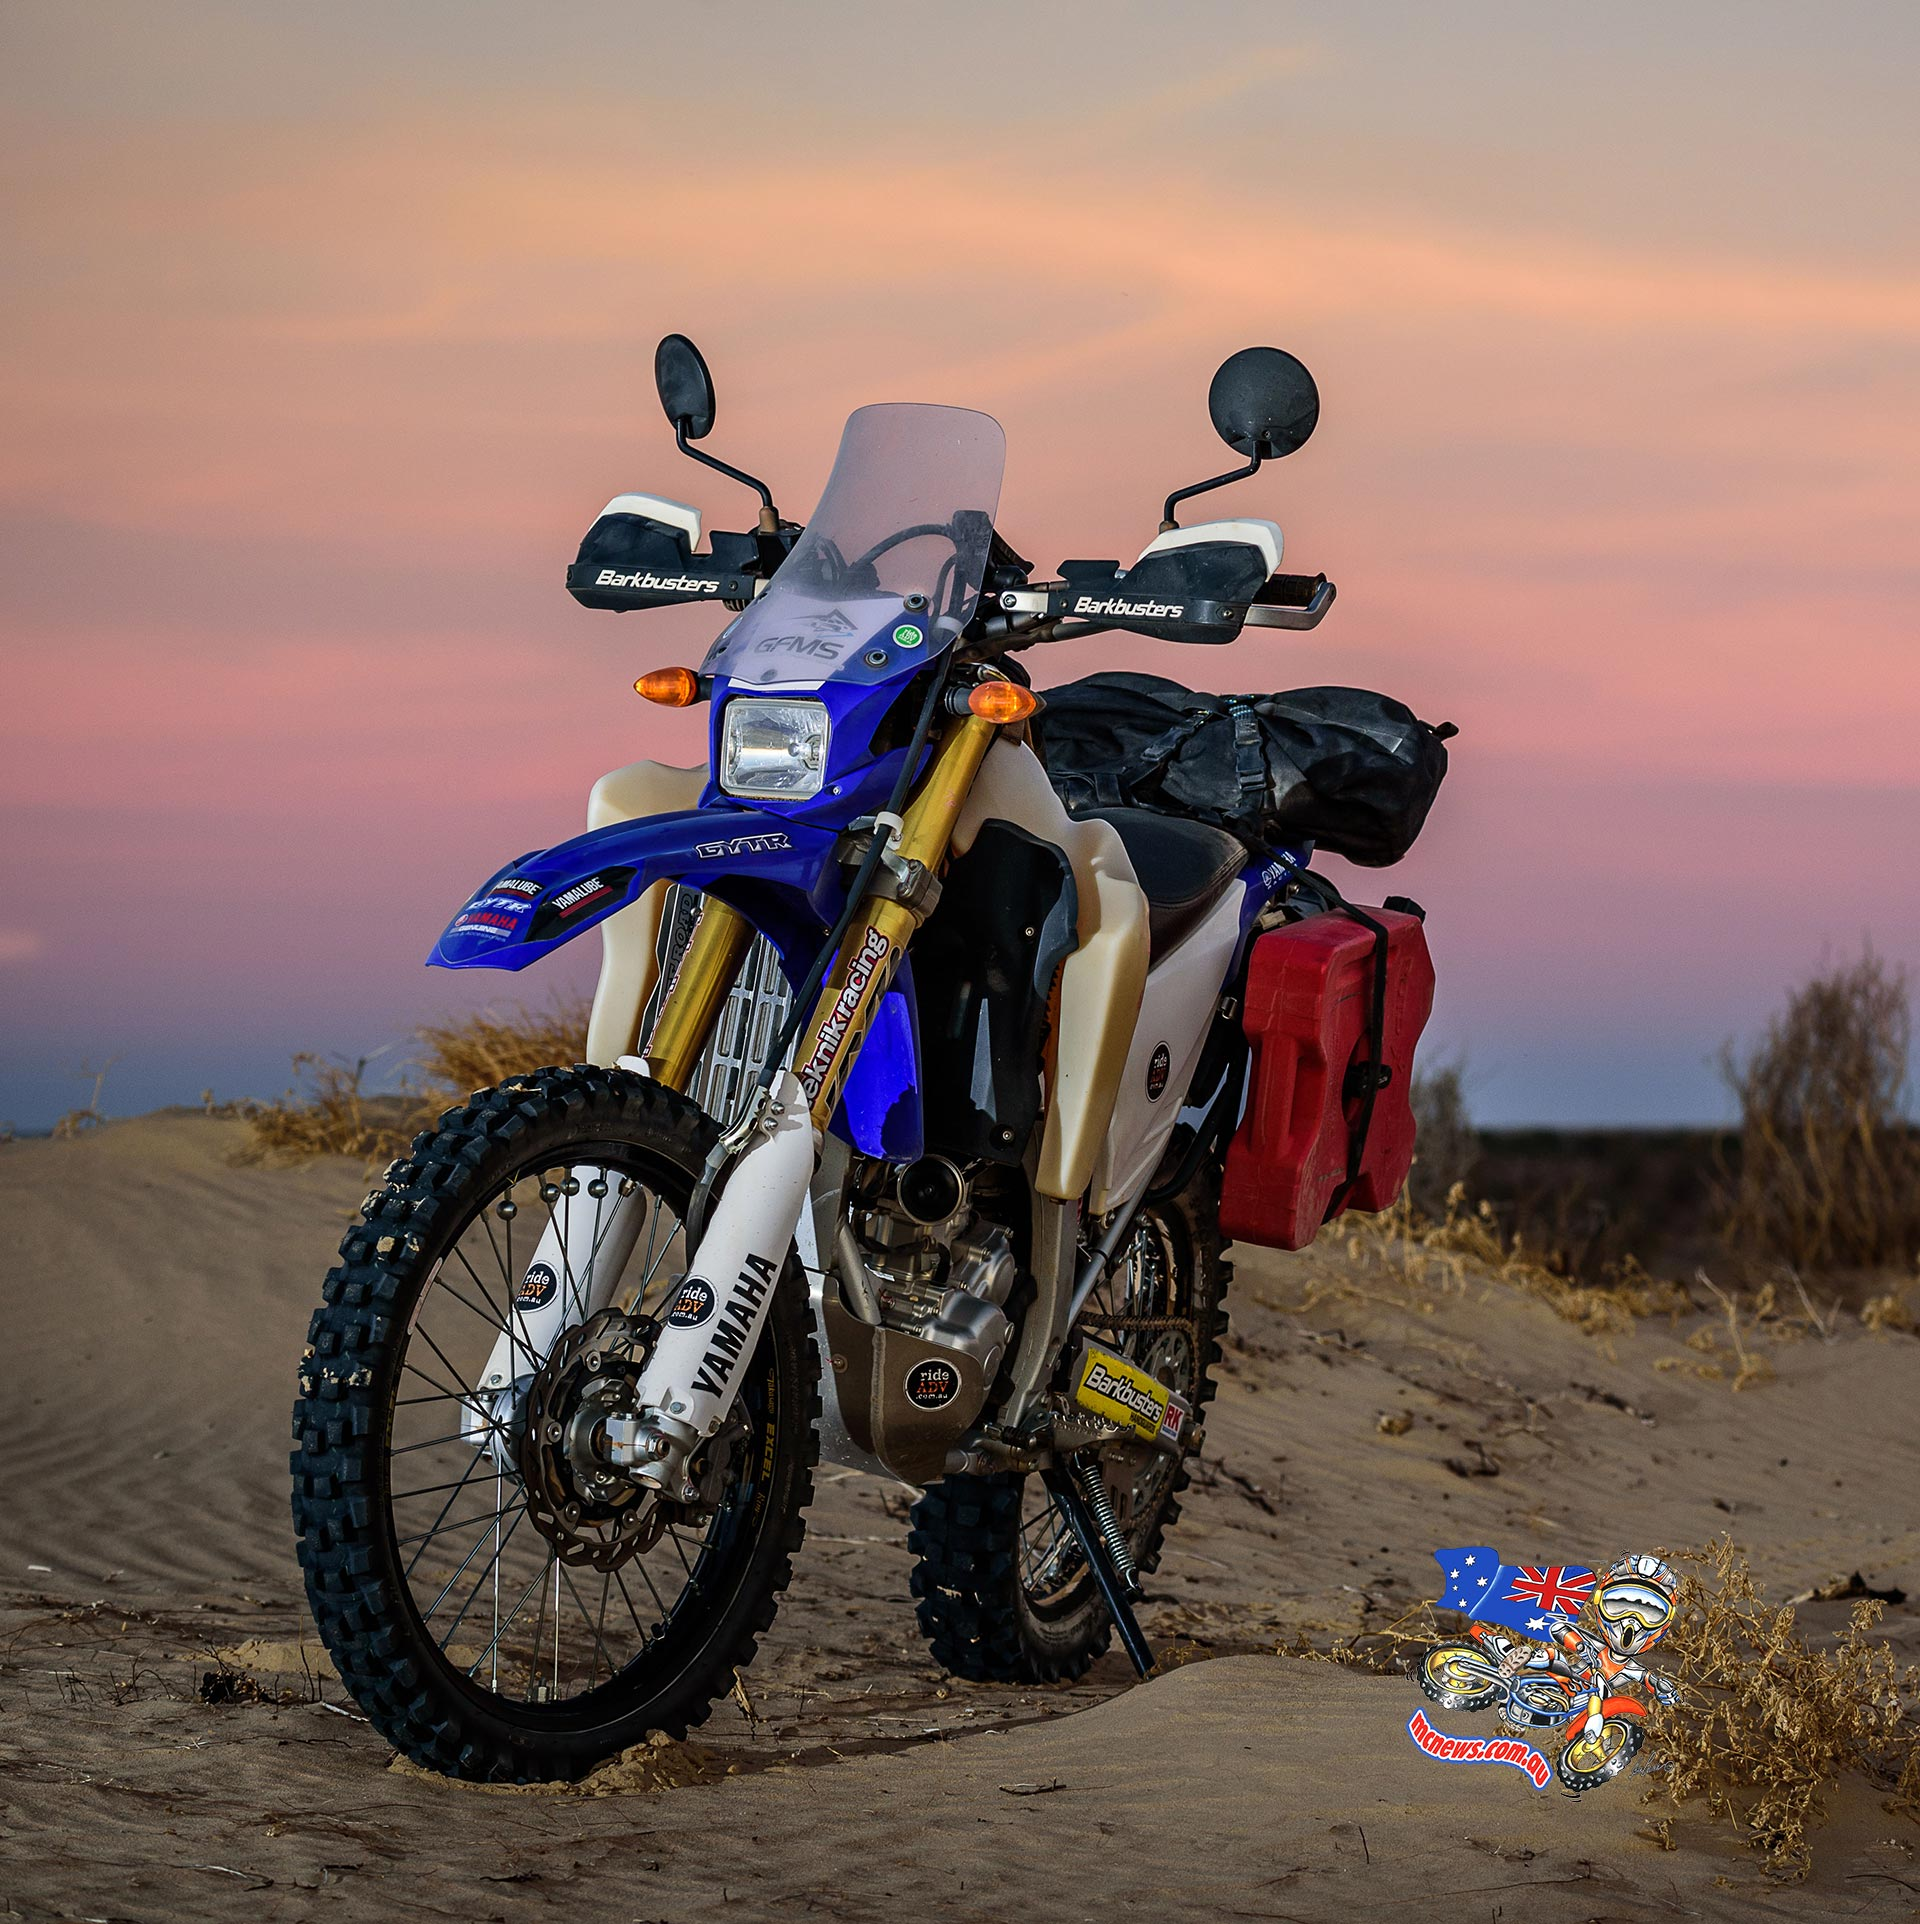 Yamaha WR250R in the desert